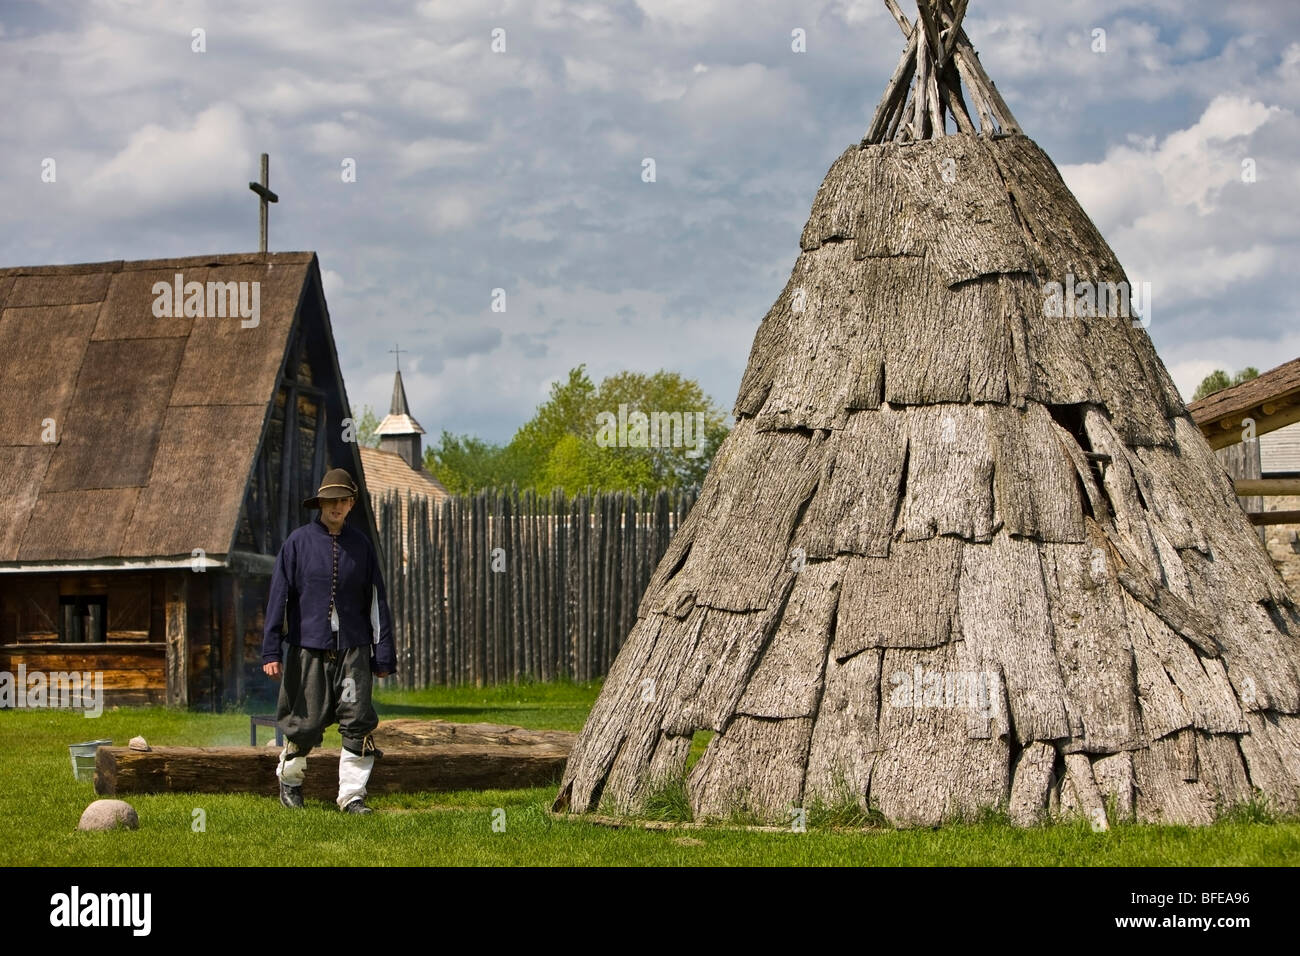 Costumed character next to a teepee in the Sainte-Marie Among the Hurons settlement in the town of Midland, Ontario, - Stock Image